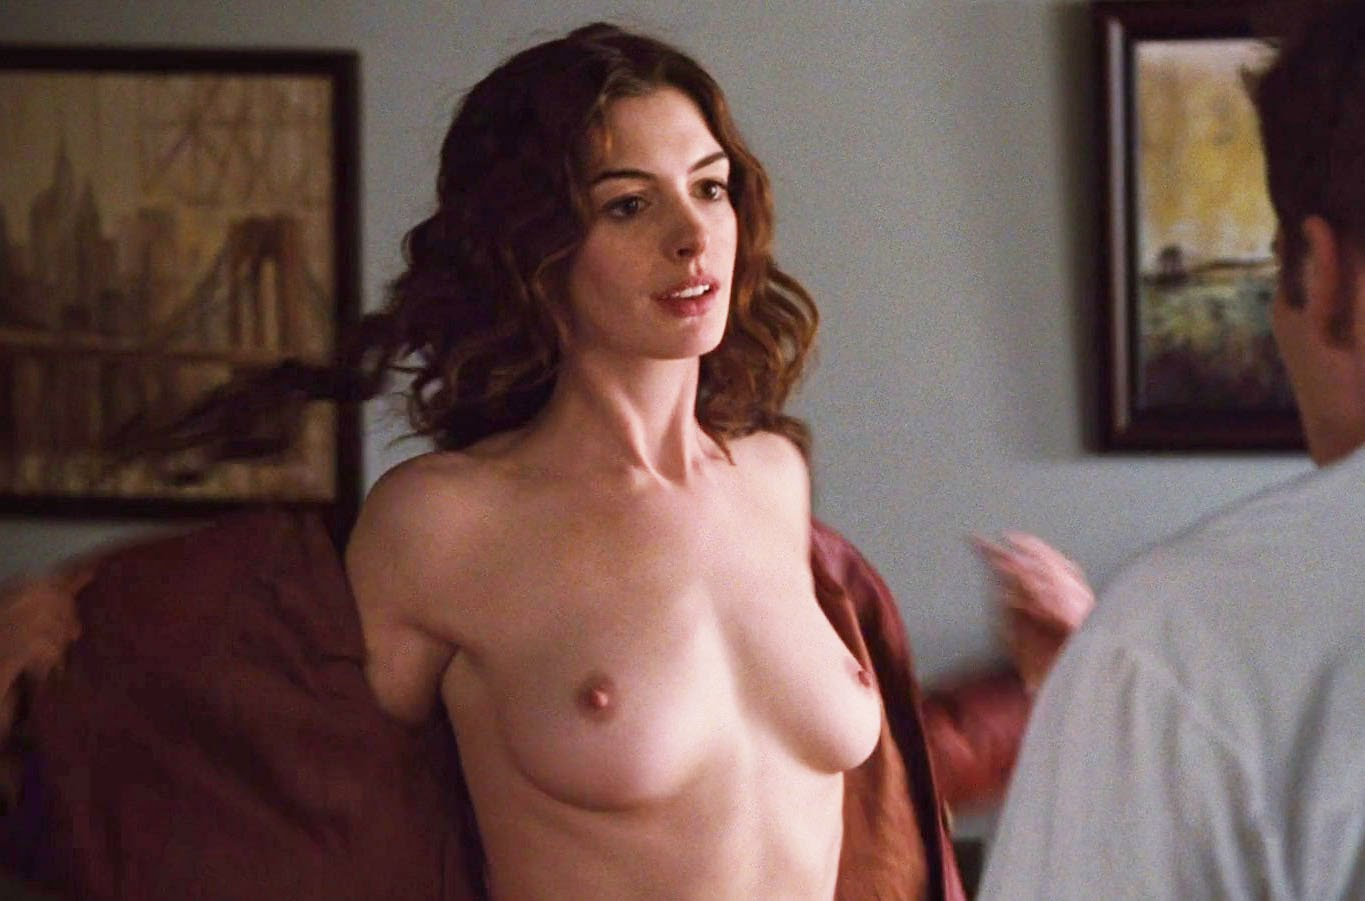 anne-hathaway-sexy-scenes-necro-fucked-pussy